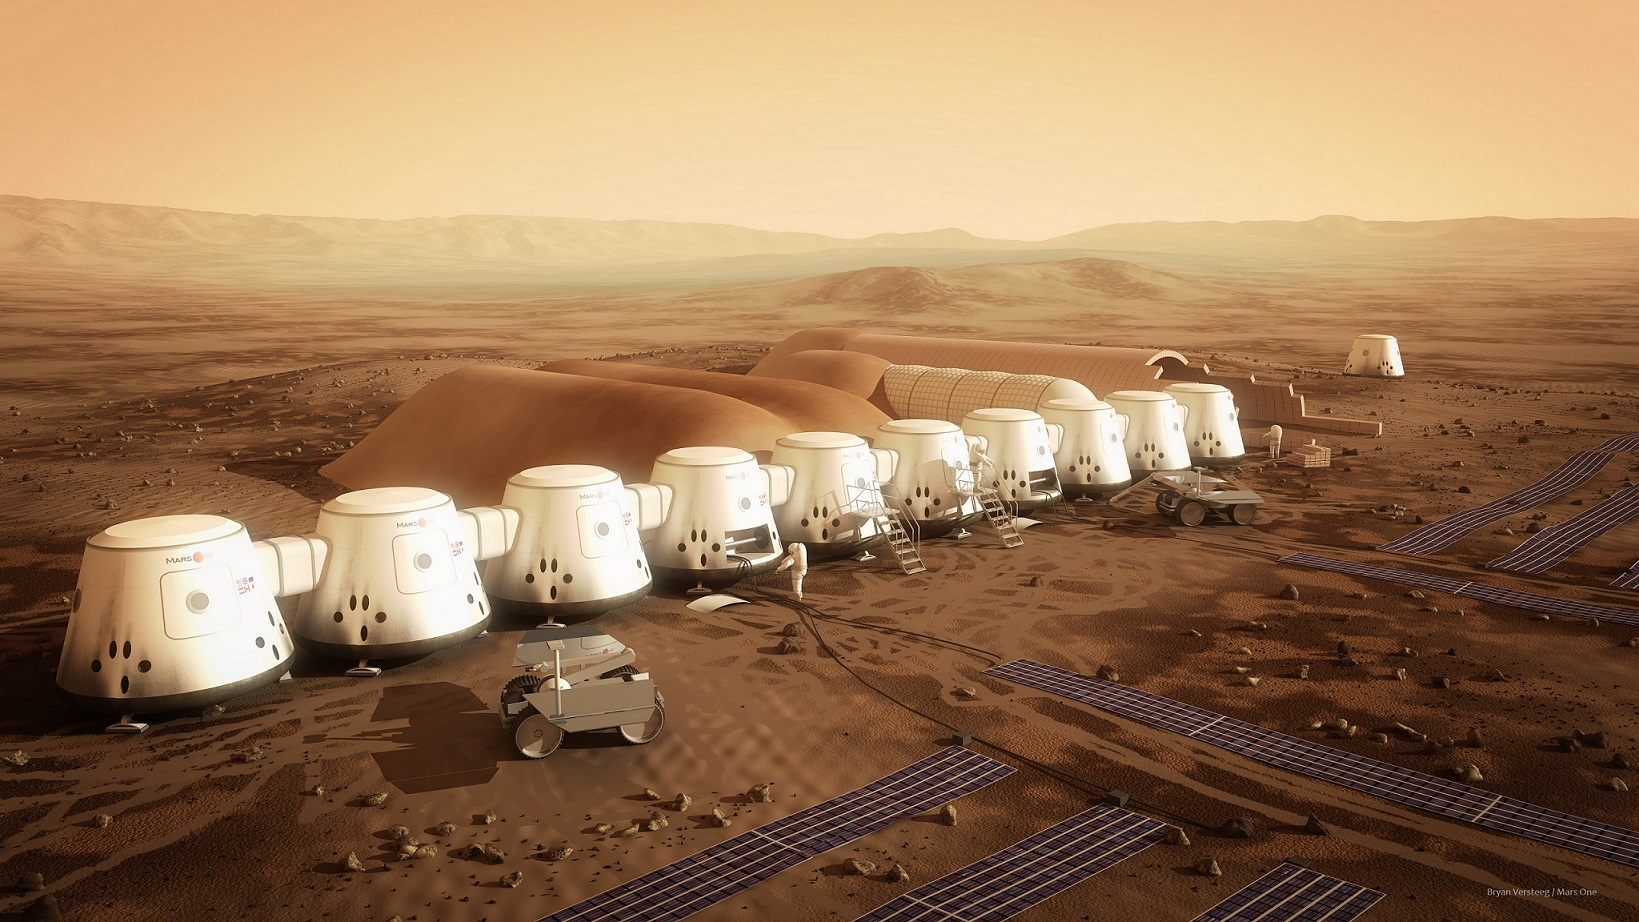 All components of Mars One's settlement are slated to reach their destination by 2021. The hardware includes two living units, two life-support units, a second supply unit and two rovers. Credit: Bryan Versteeg/Mars One